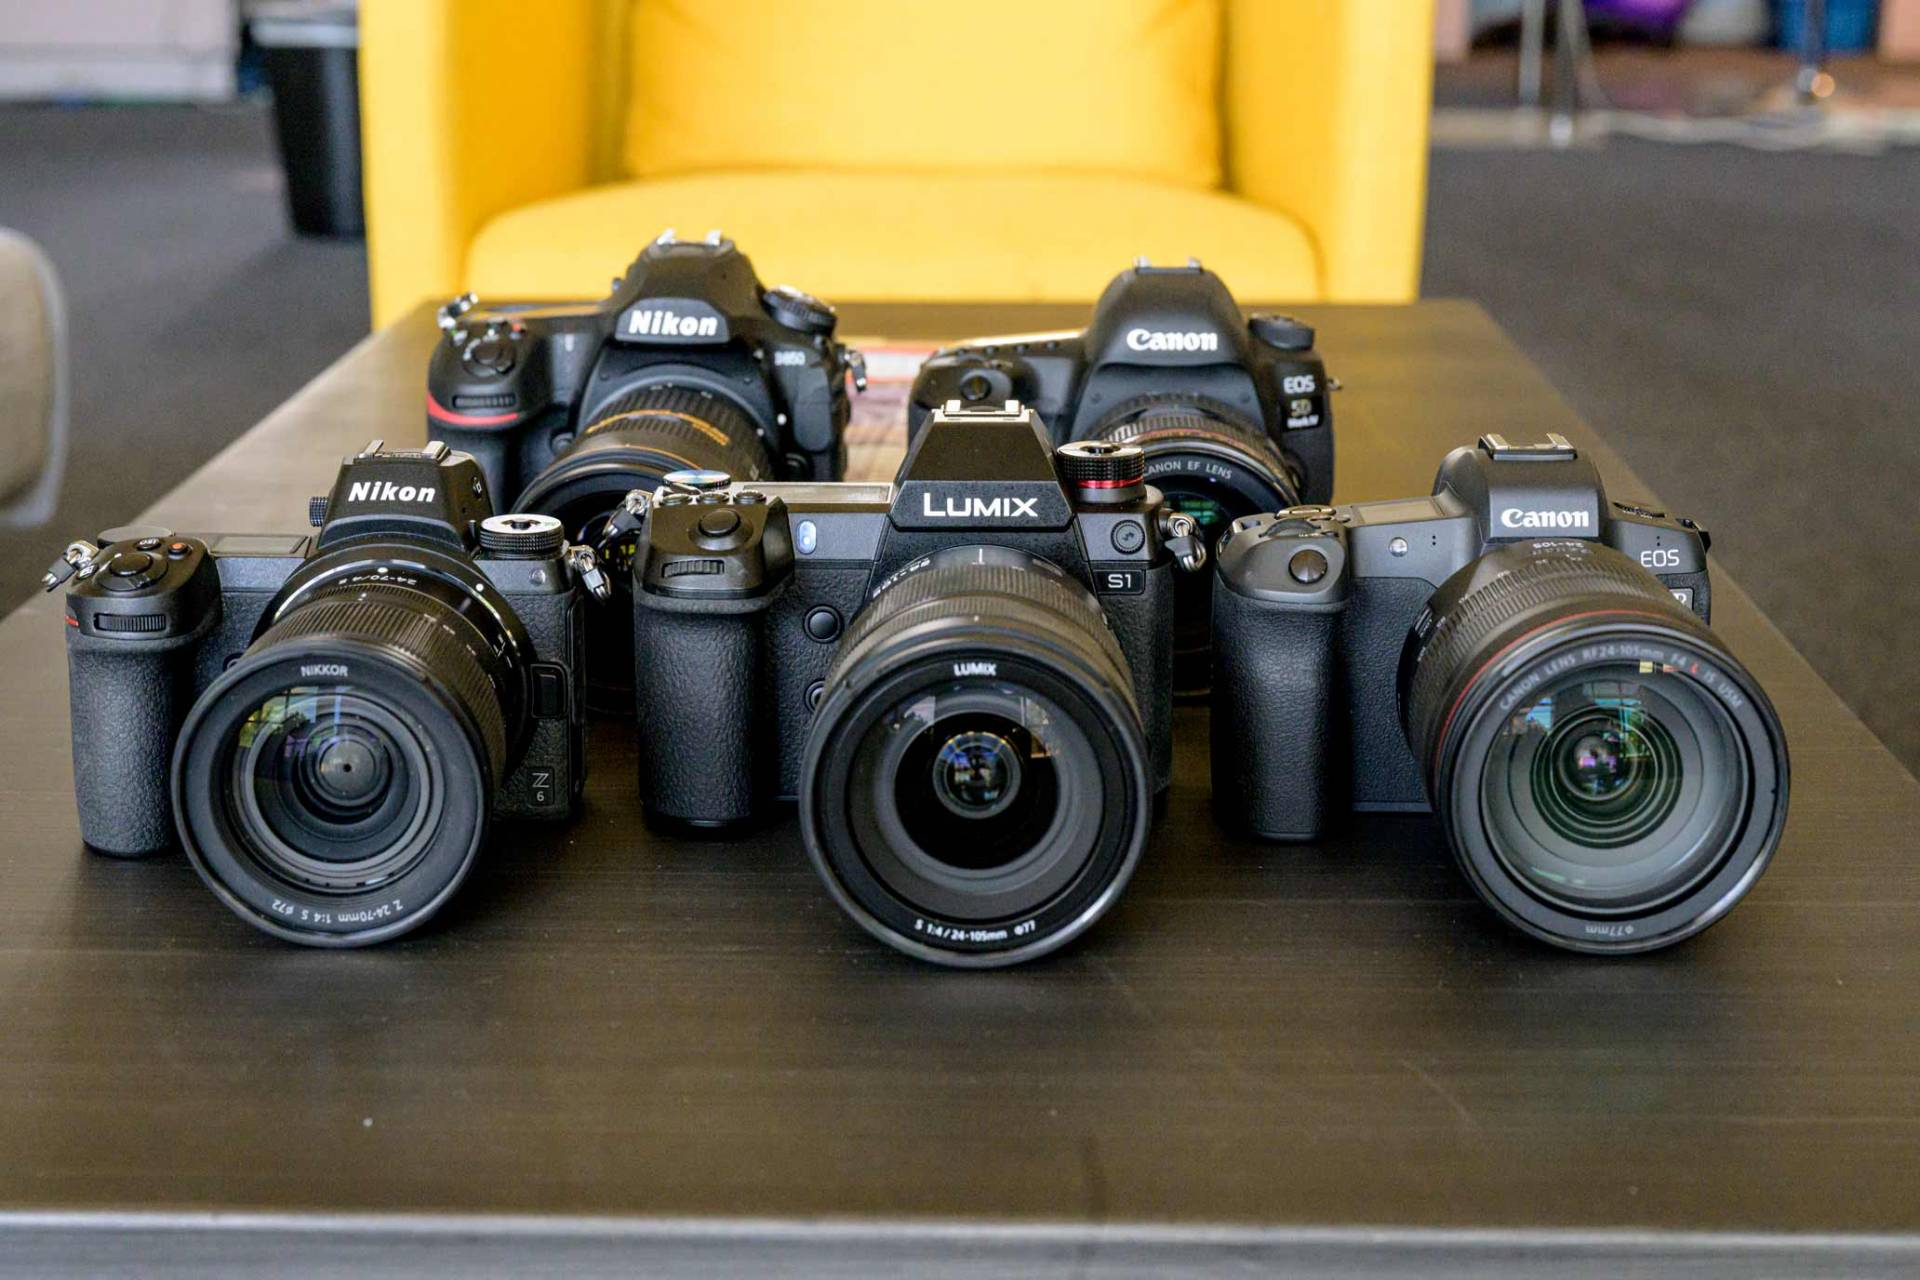 collection of relevant camera from Panasonic, Sony, Nikon and Canon